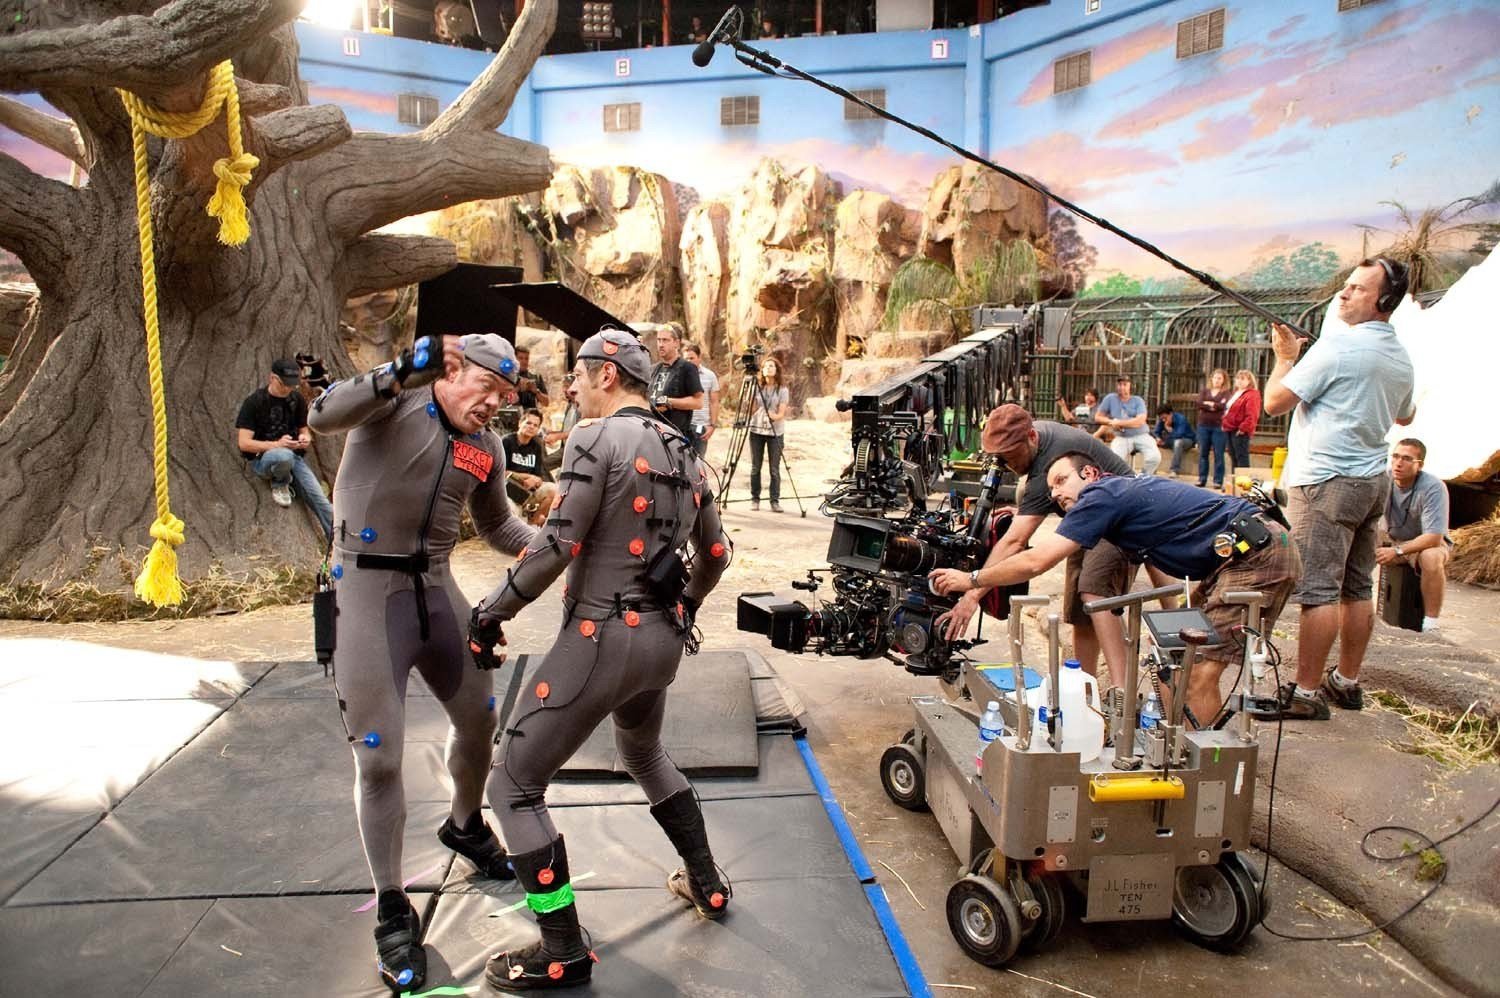 Filming Rise of the Planet of the Apes (2011) Behind the Scenes